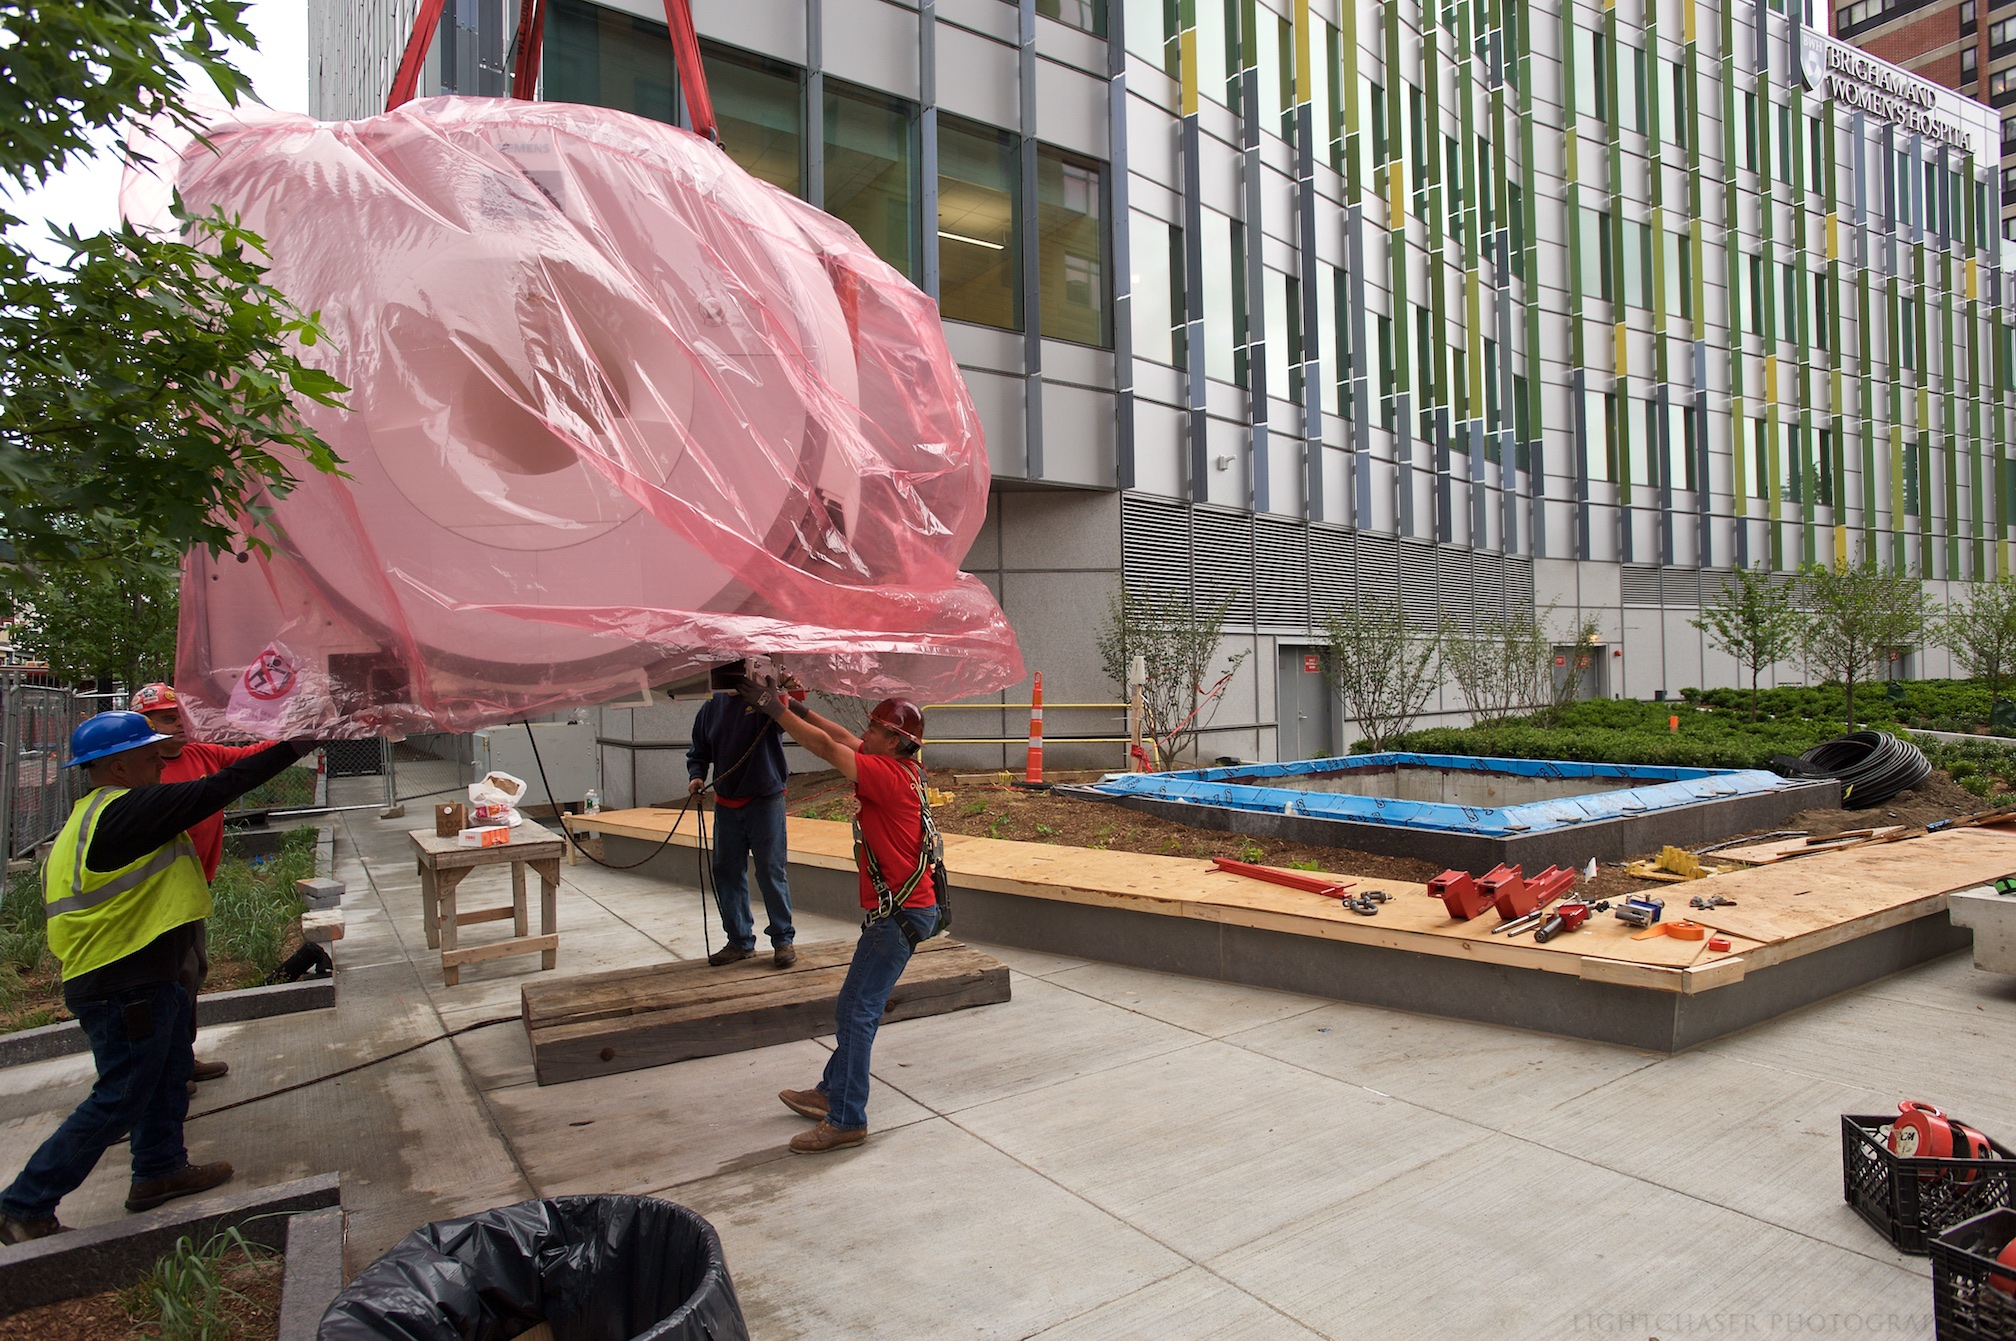 A 3.0 Tesla MRI scanner is hoisted toward the access shaft leading to the lower levels of the BBF.